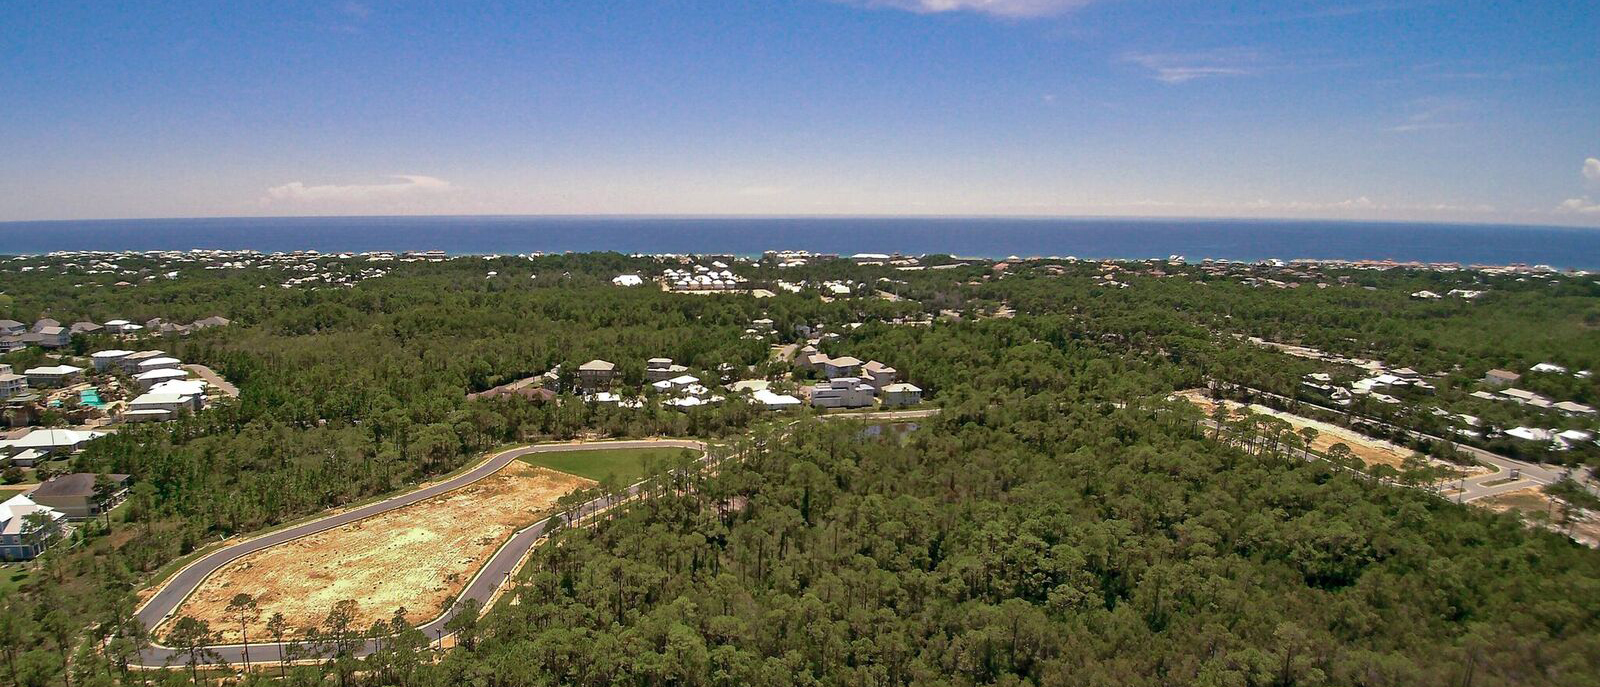 Where to find RidgeWalk in Santa Rosa Beach, FL. Location map and links to these 30A home sites for sale.